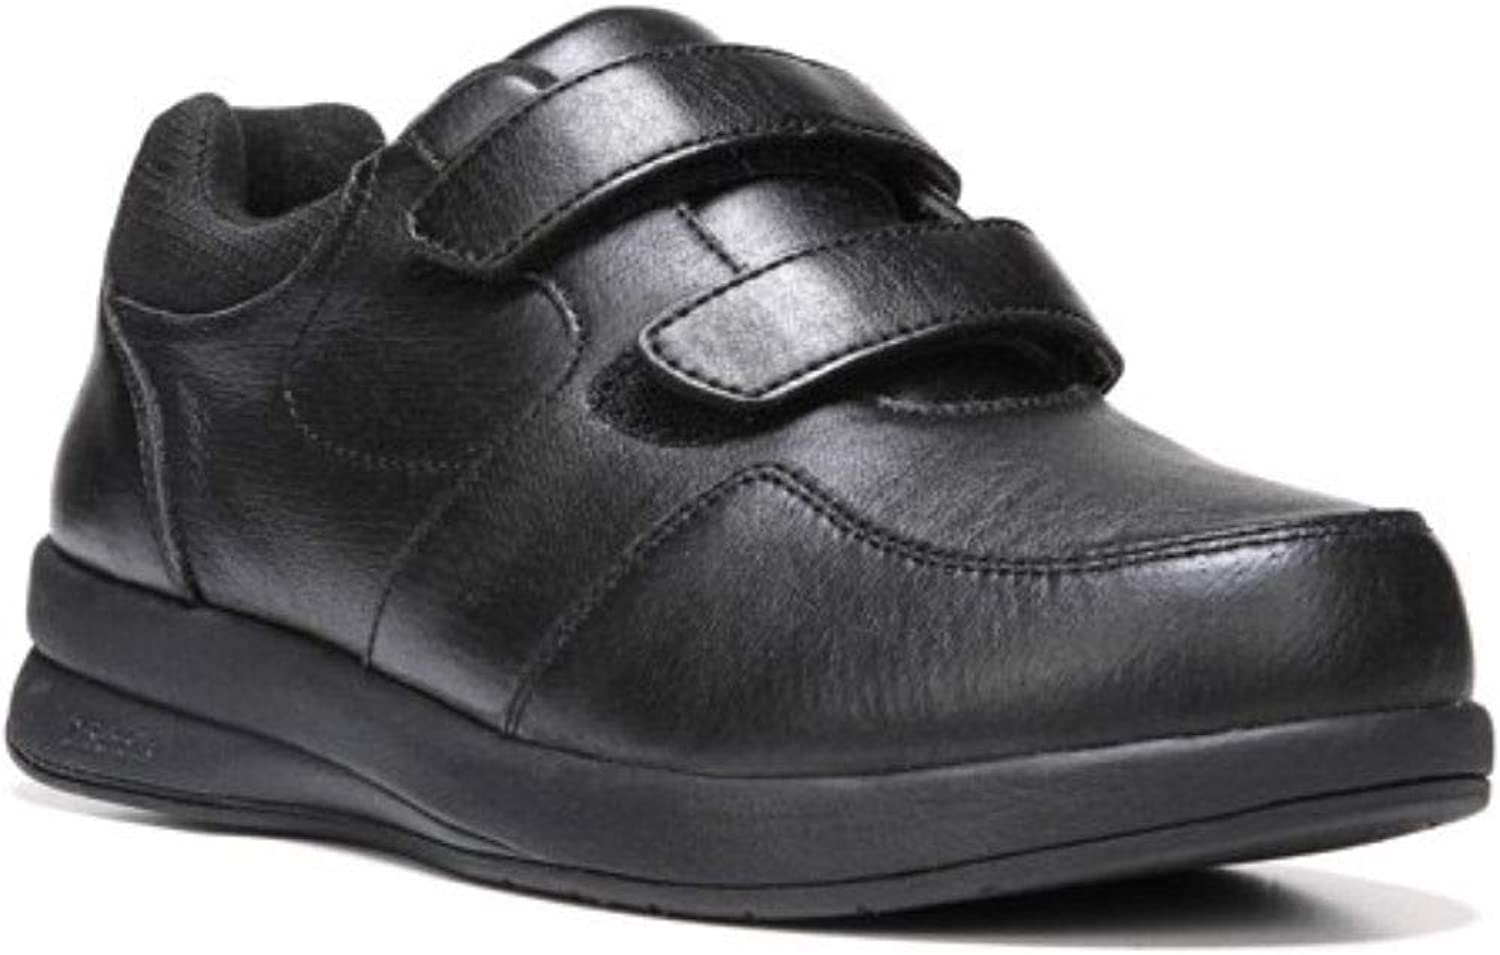 Dr. Scholl's Women's Manner Therapeutic Wide Width Casual shoes